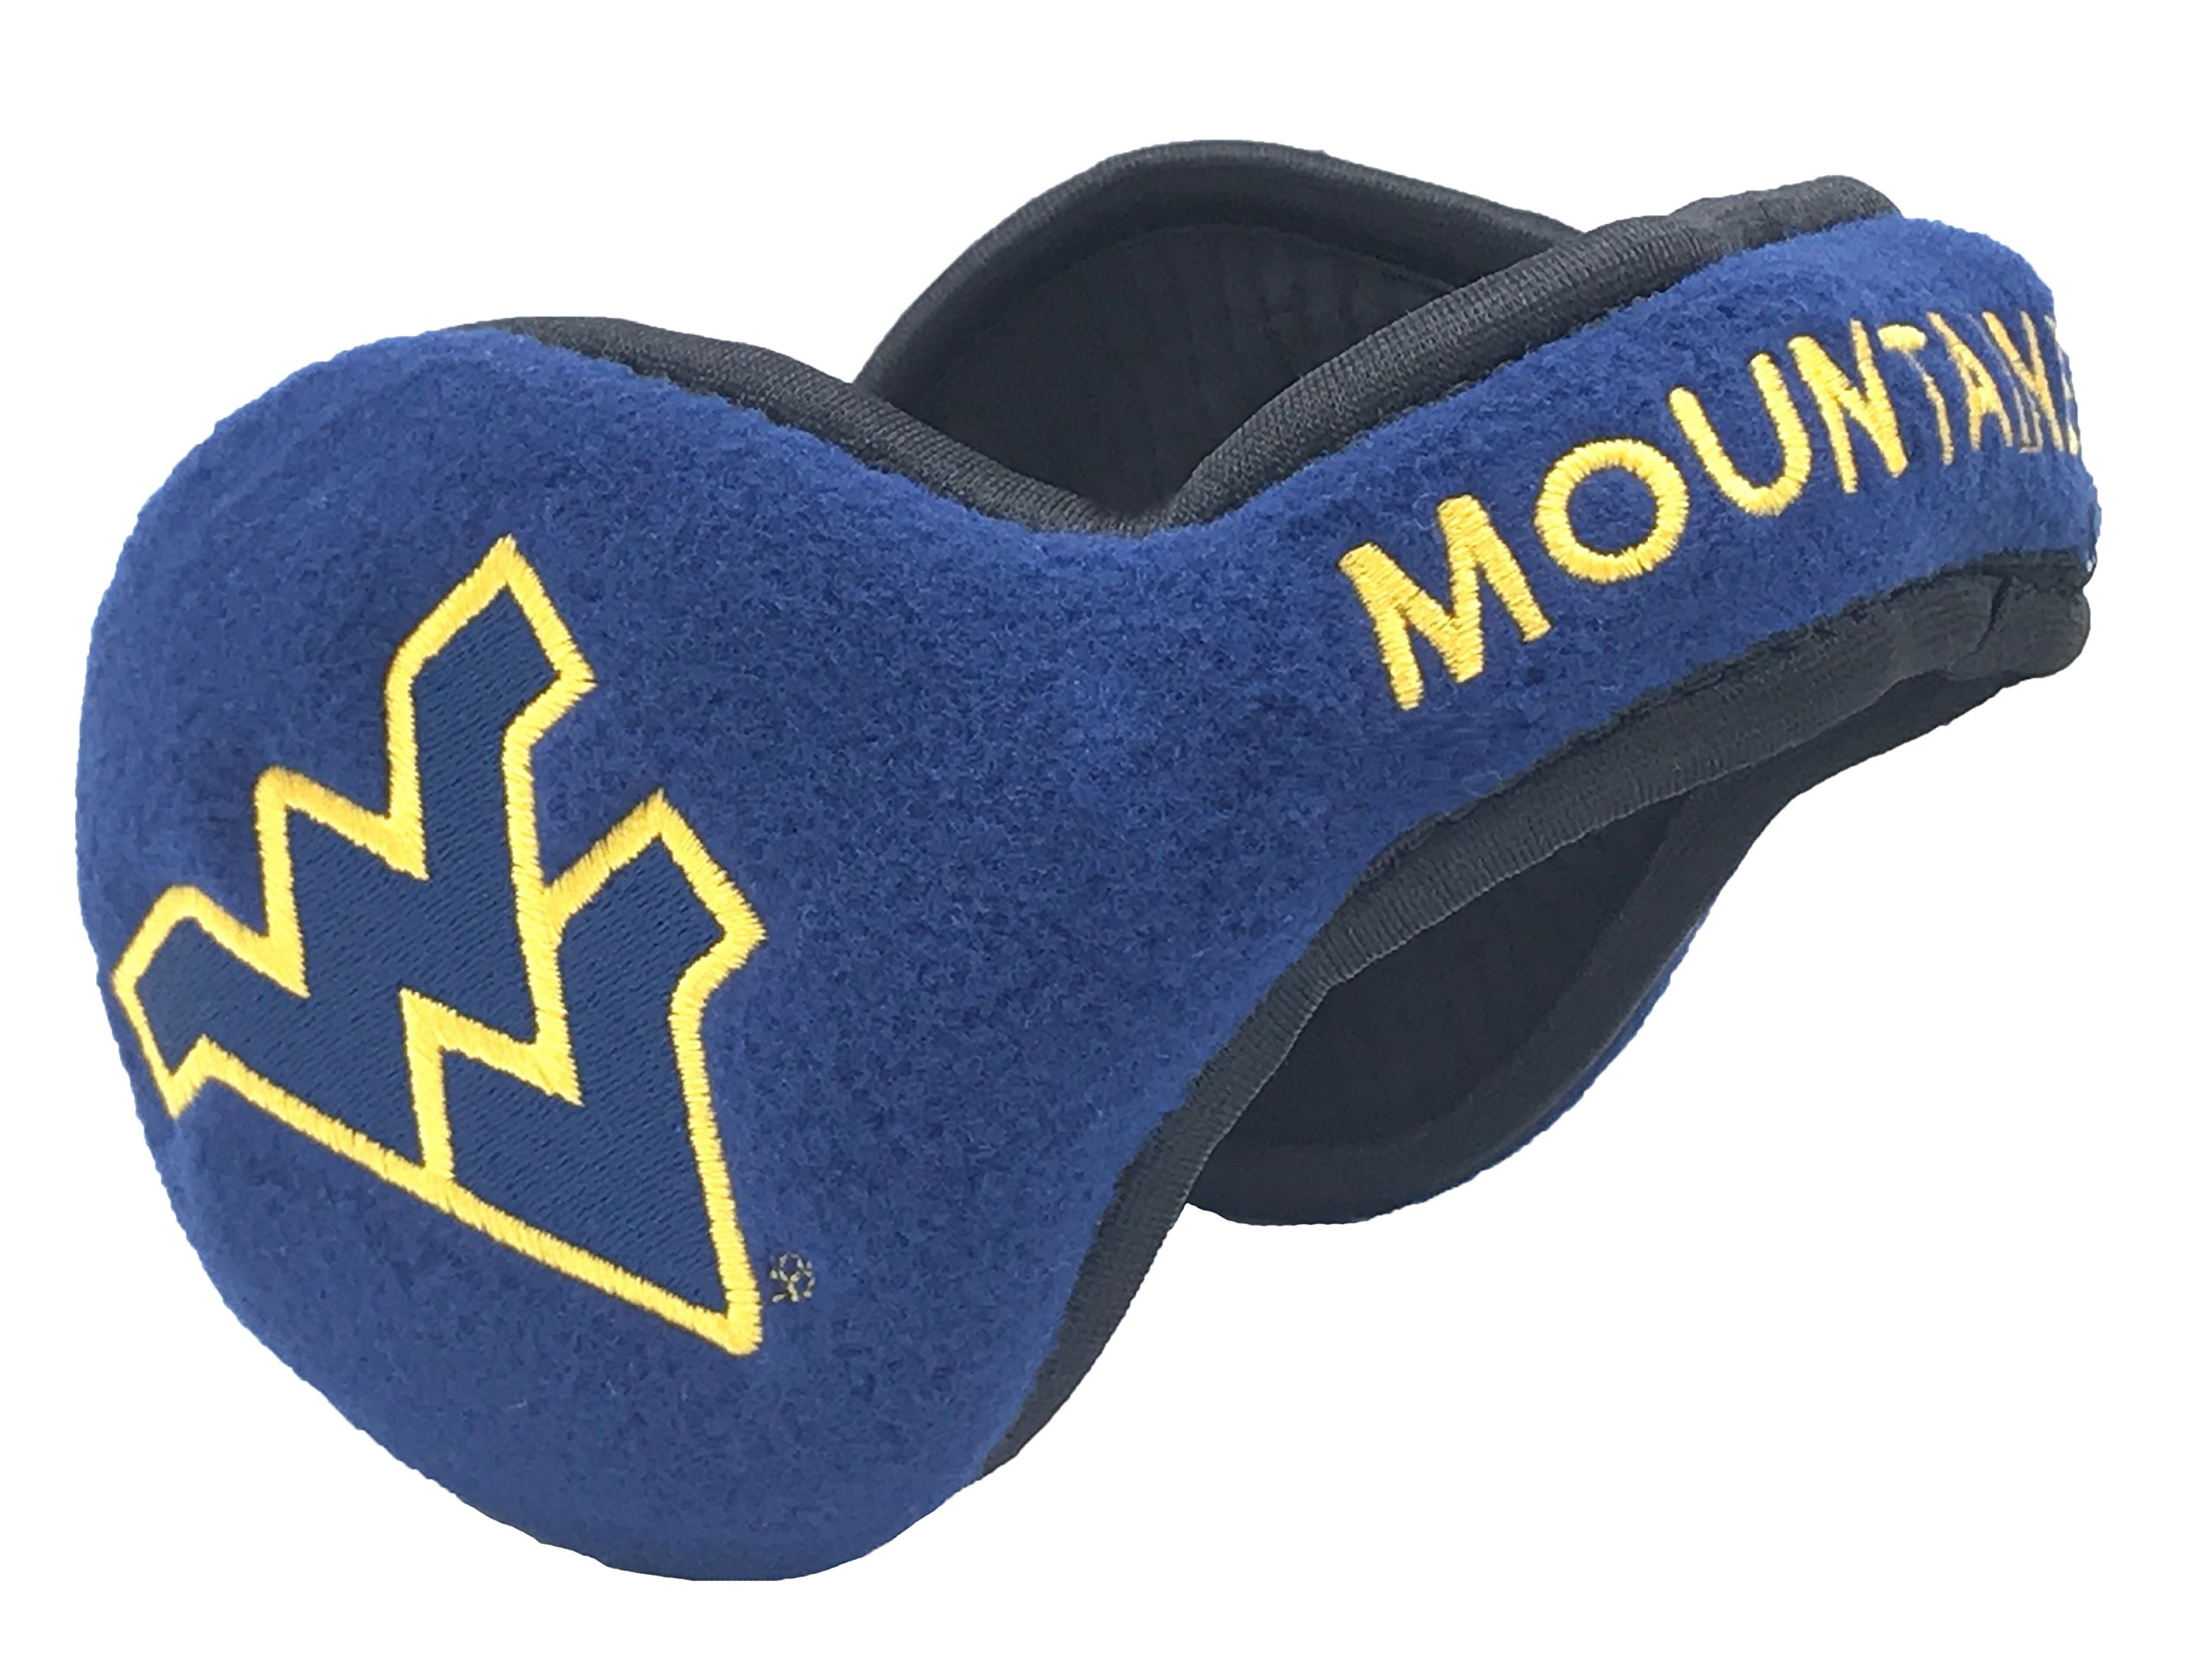 180s West Virginia Mountaineers Behind-the-Head Ear Warmer, Unisex, One Size Fits Most, Blue